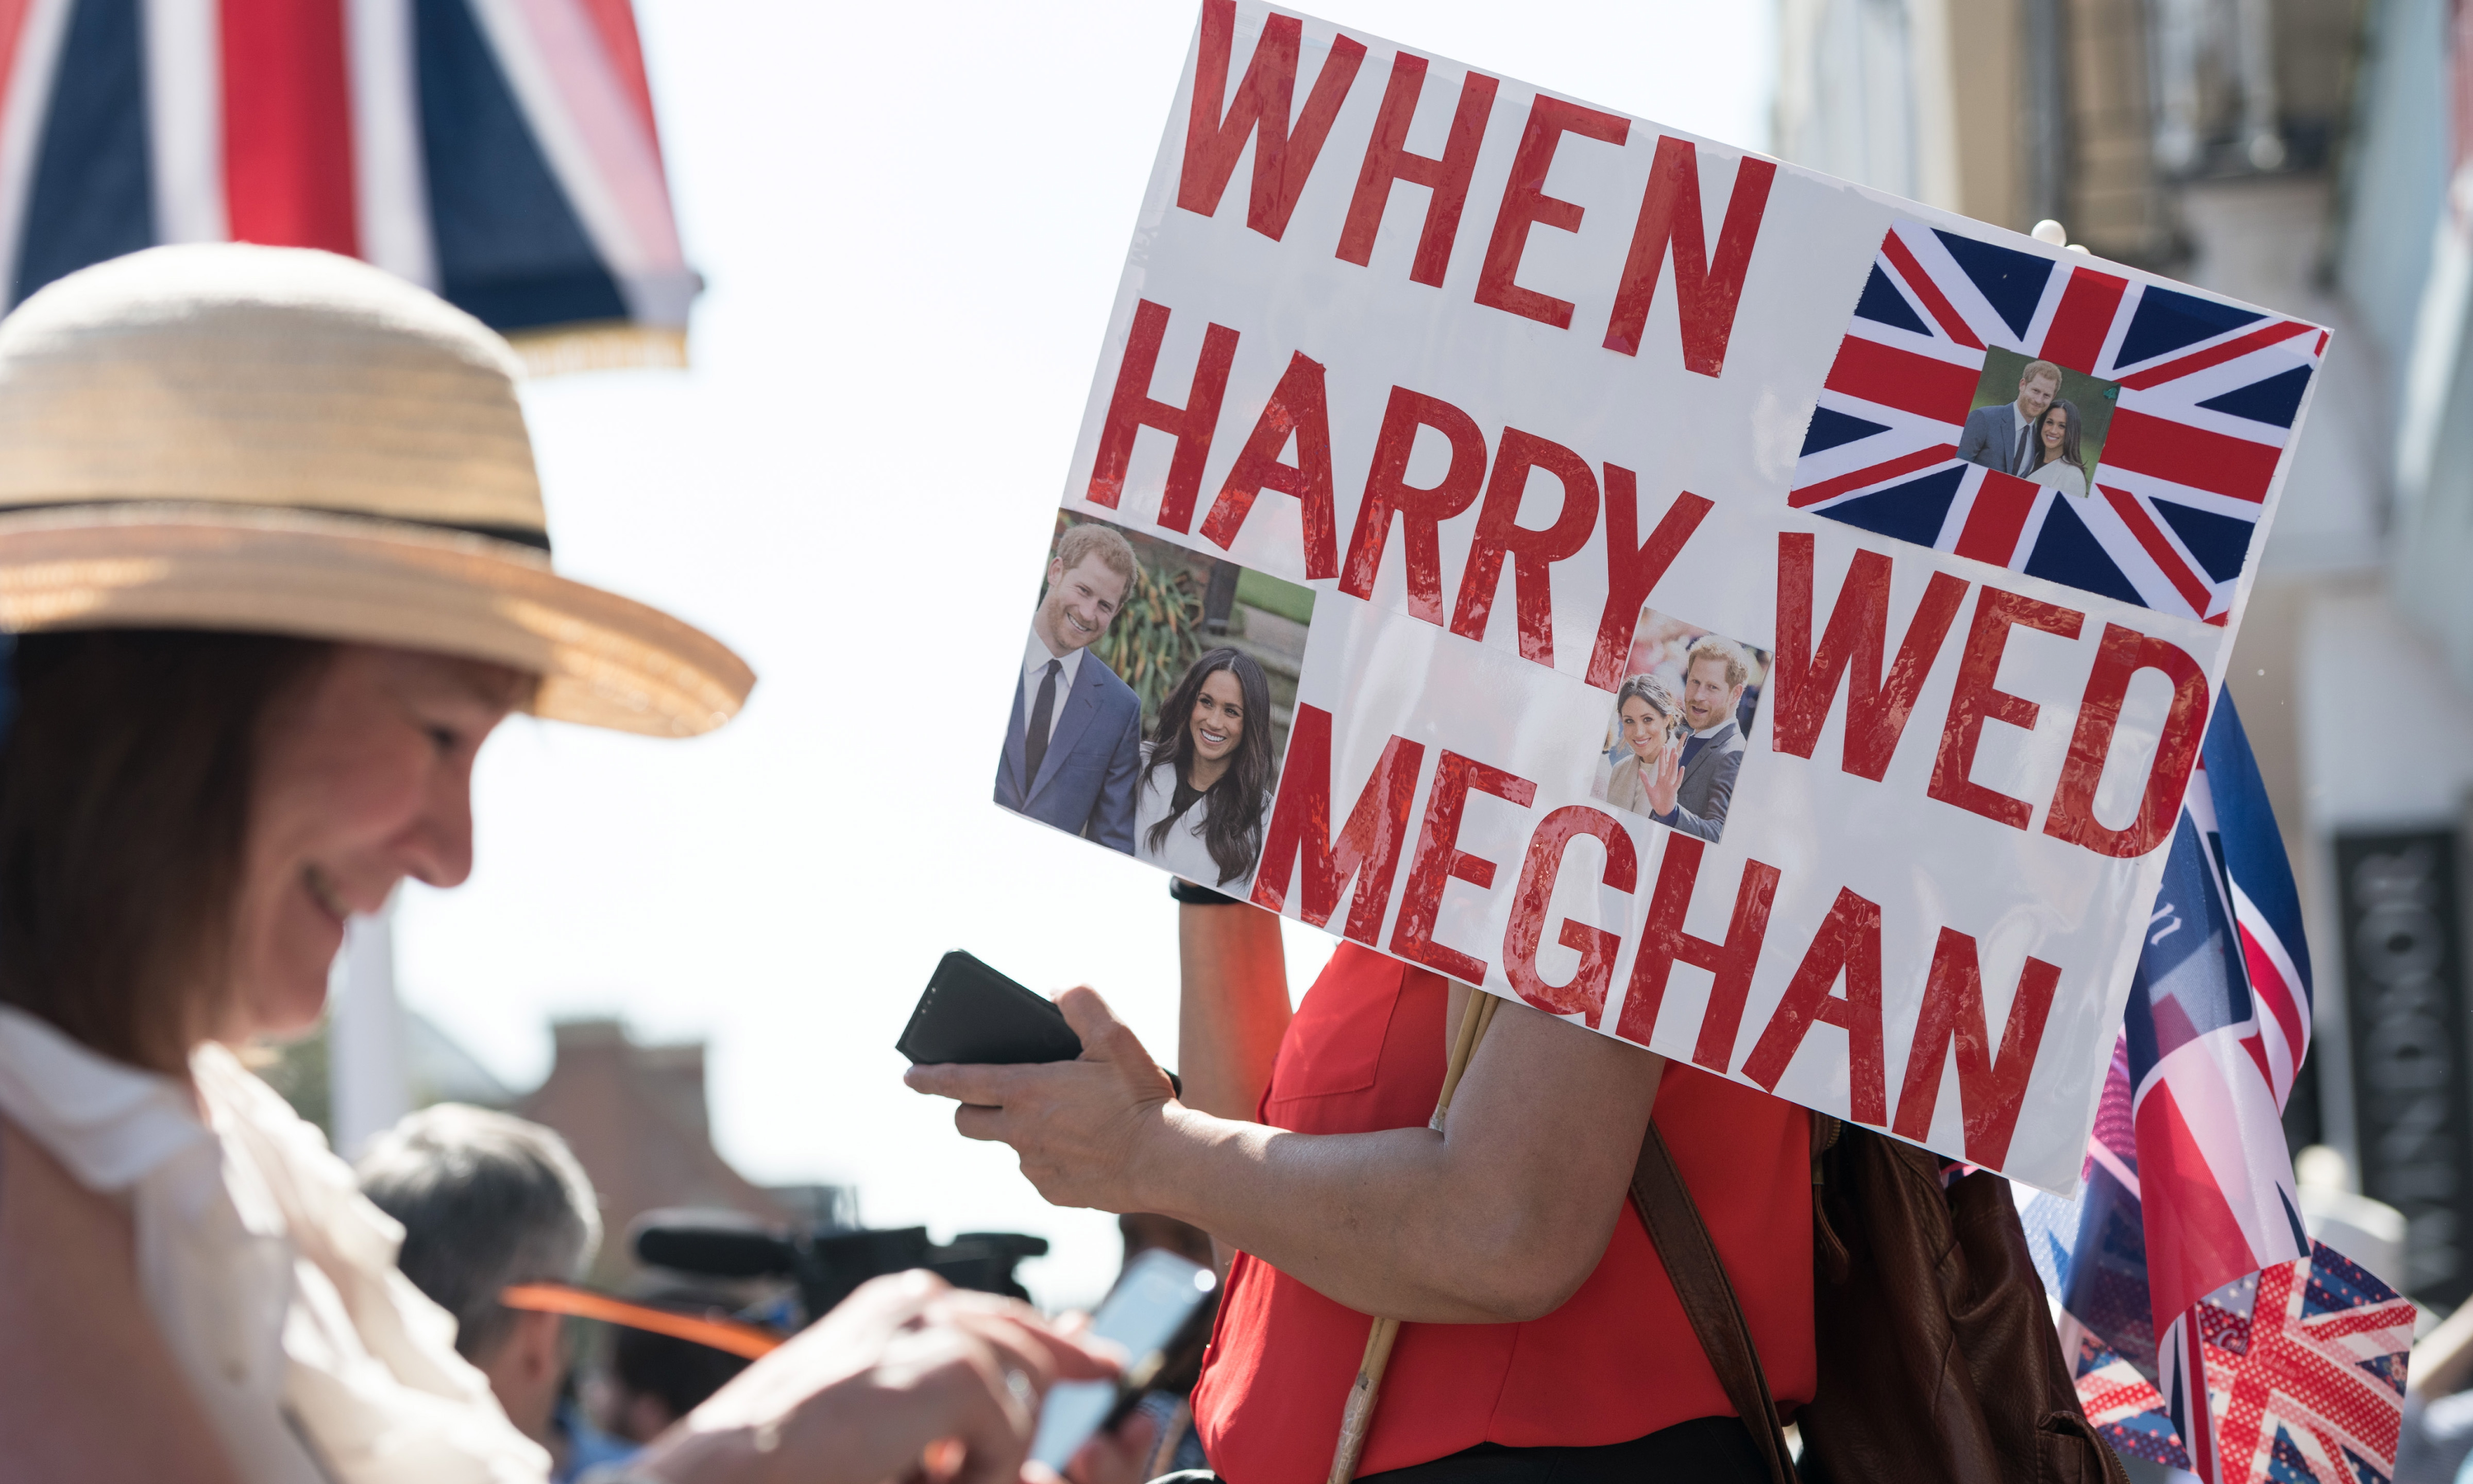 Royal wedding Meghan Markle and Prince Harry marry as millions watch